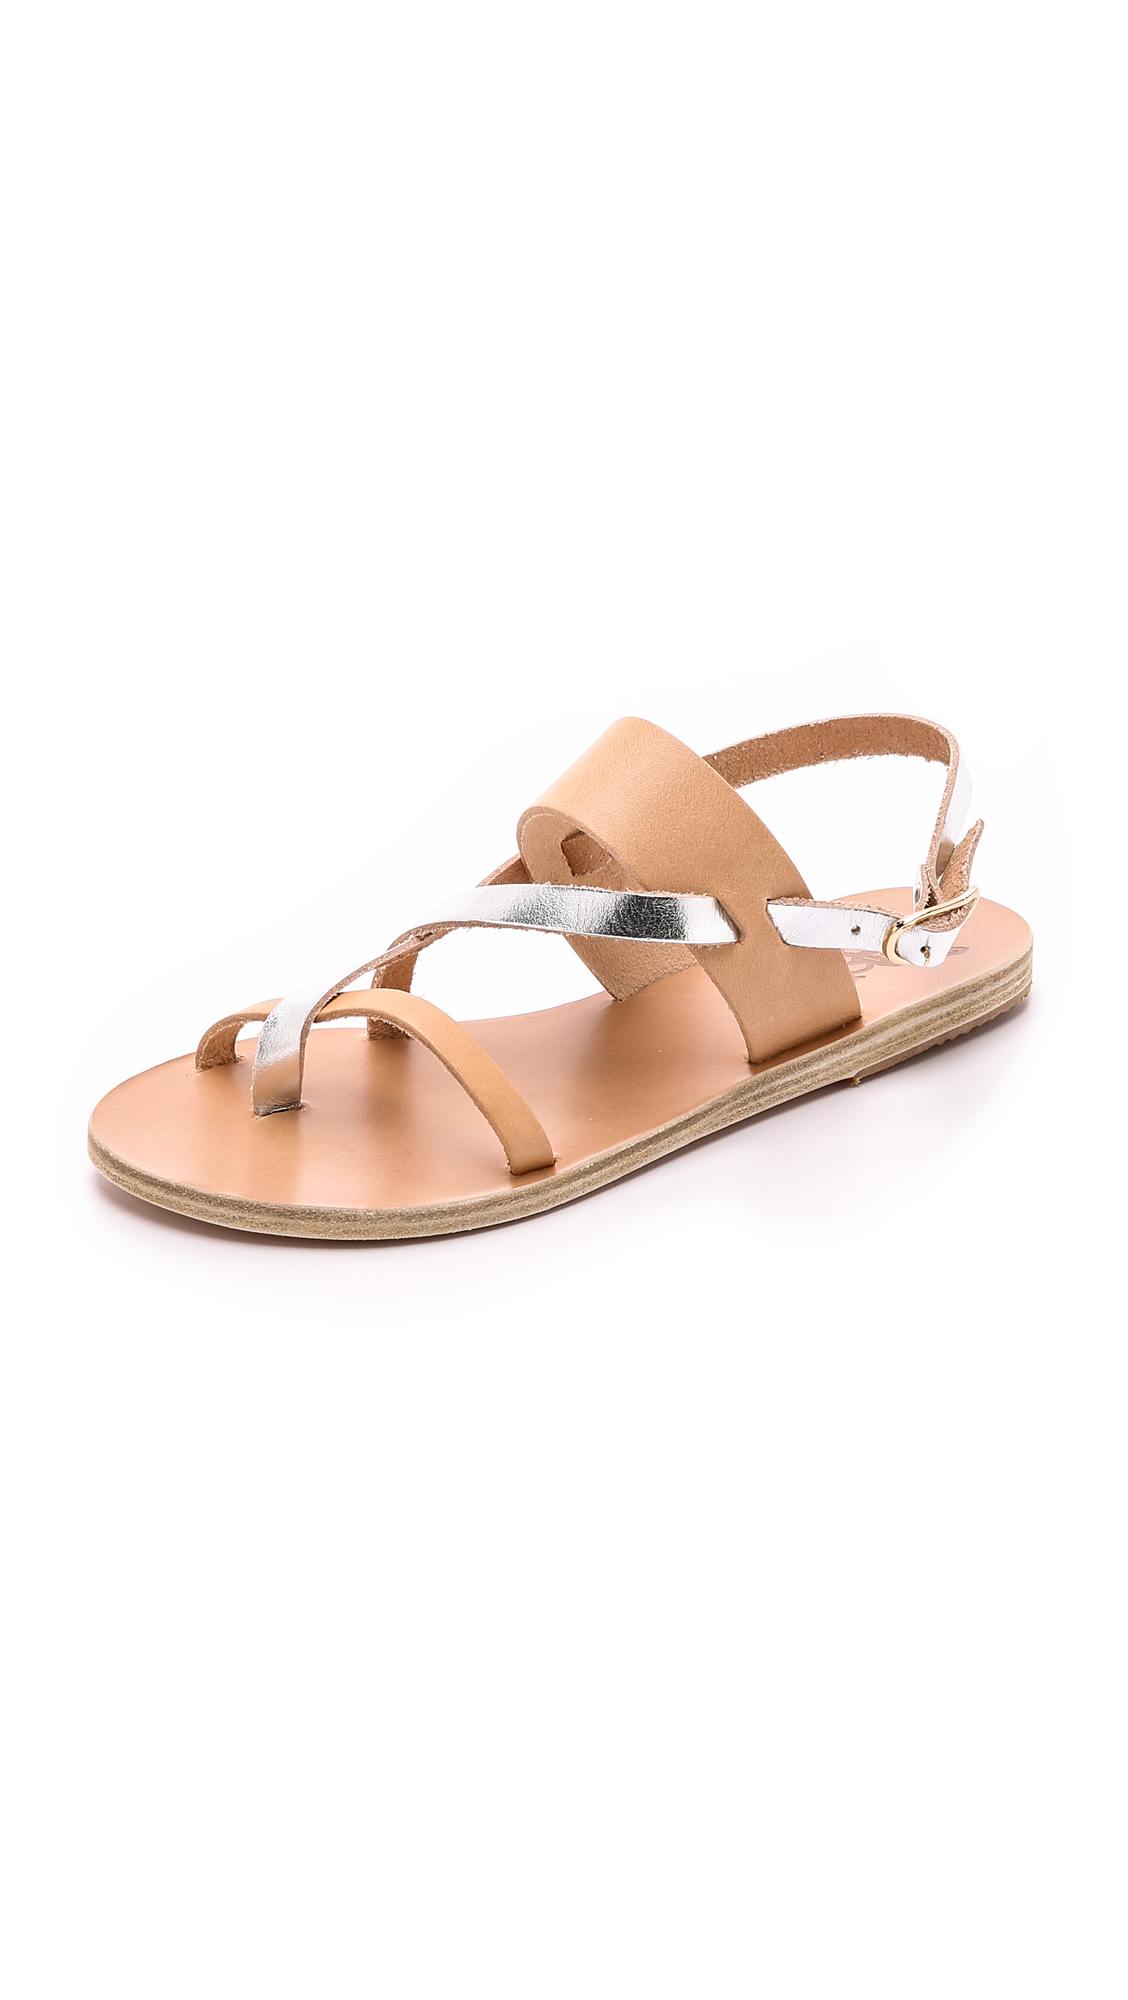 Ancient Greek Sandals Alethea Sandals - Natural/Silver